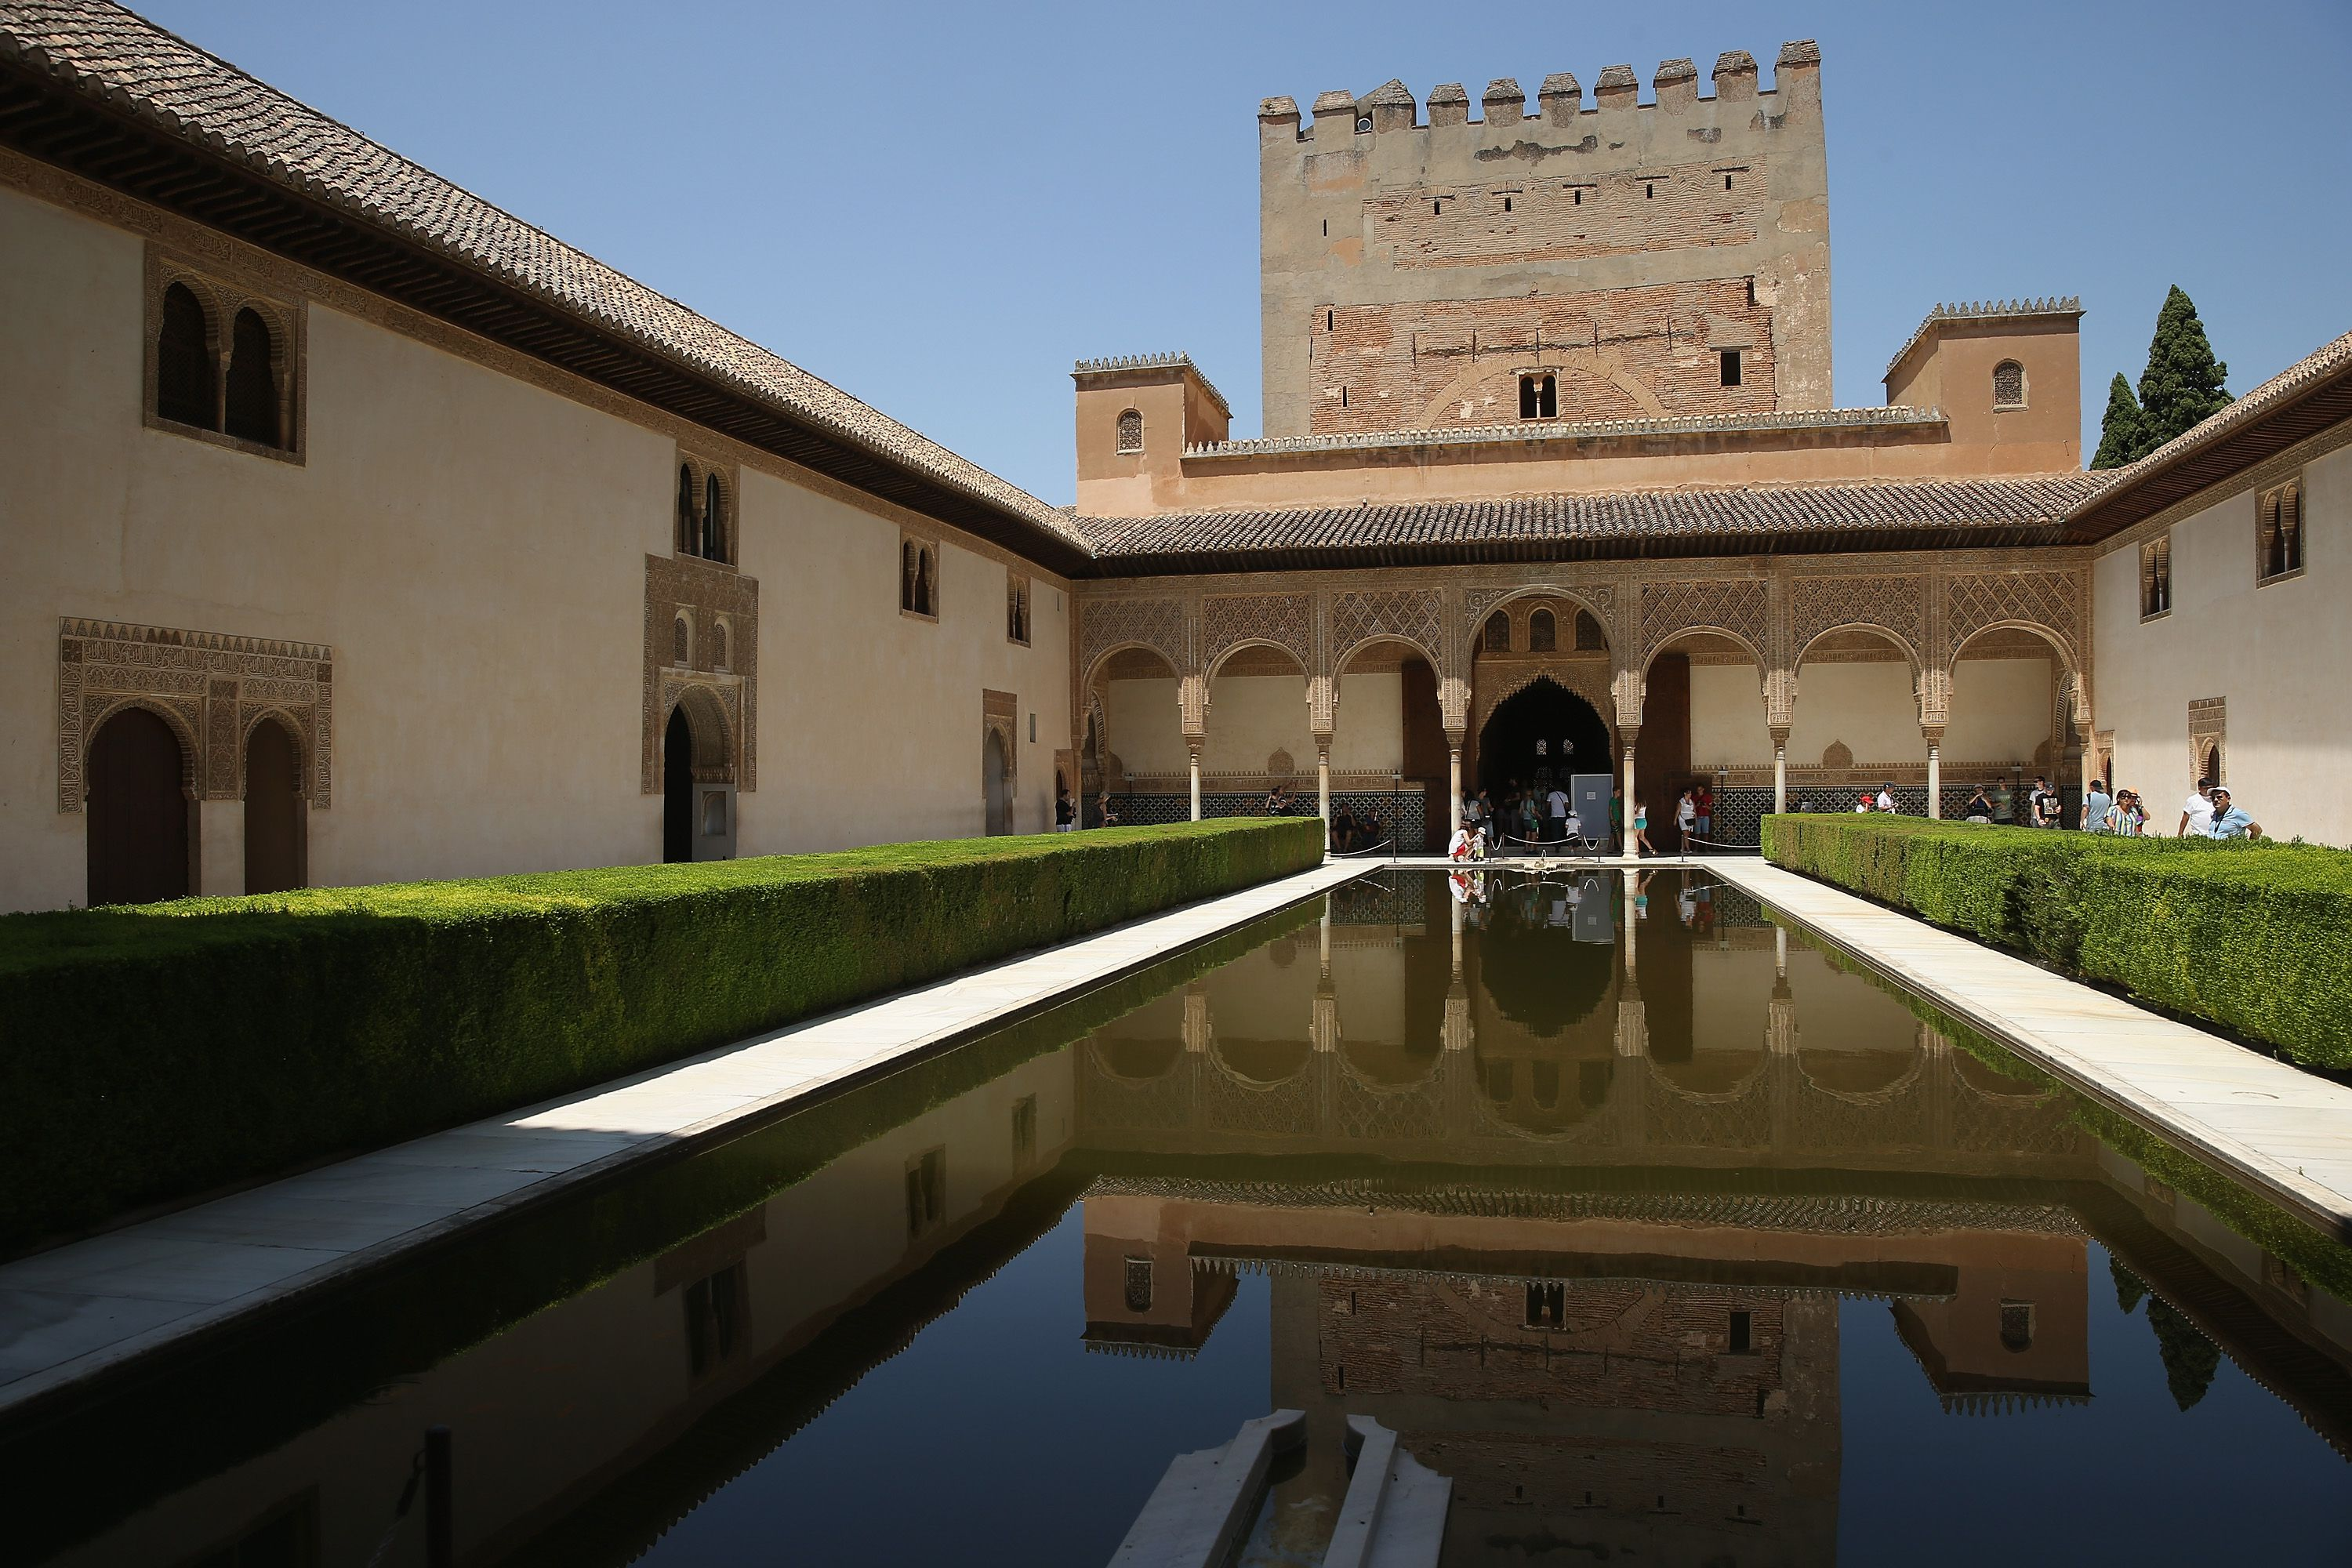 a courtyard of pathways and hedges surrounding a reflecting pool